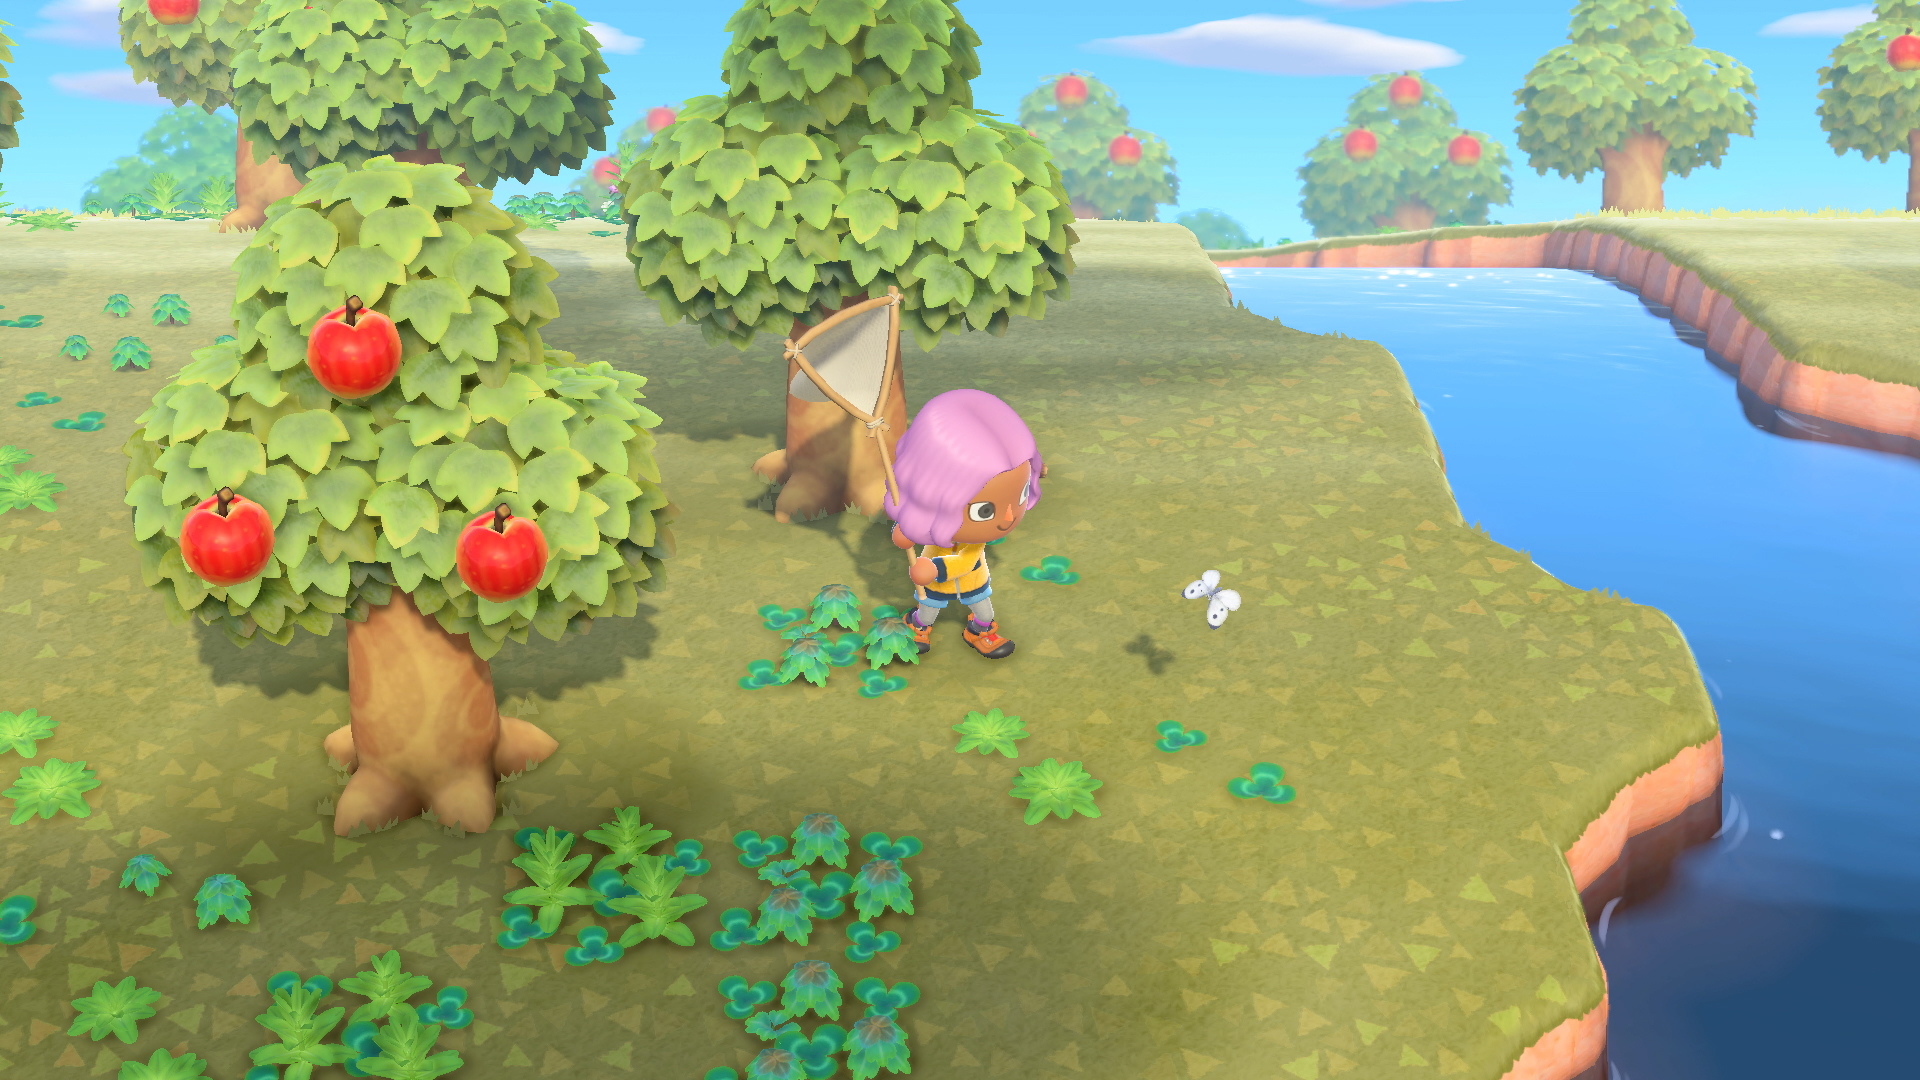 The Best Ways To Earn Money In Animal Crossing New Horizons The